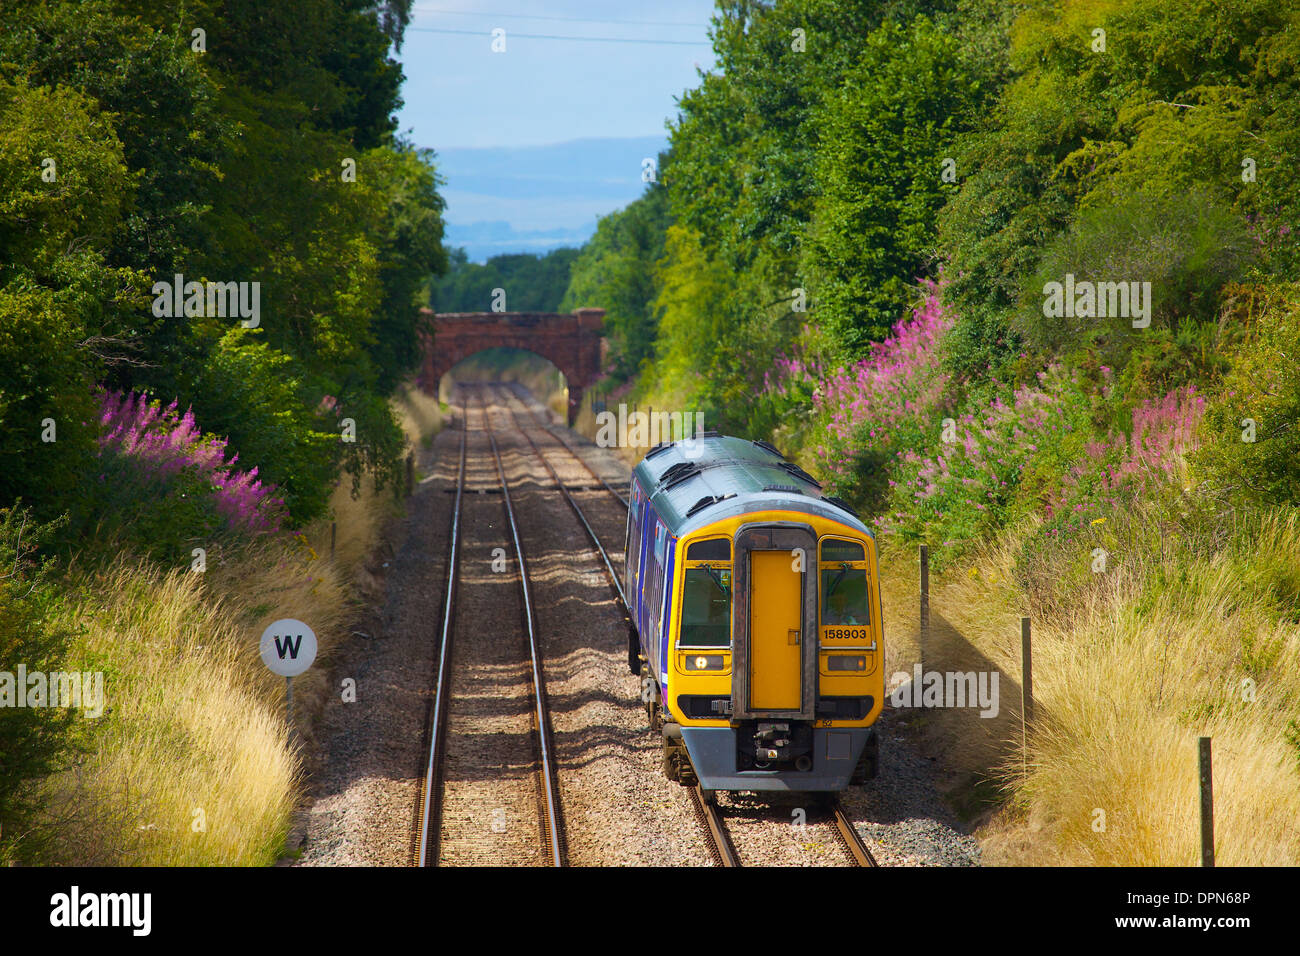 Passenger train at Wetheral Sheild on the Settle to Carlisle Railway Line in Cumbria England United Kingdom - Stock Image